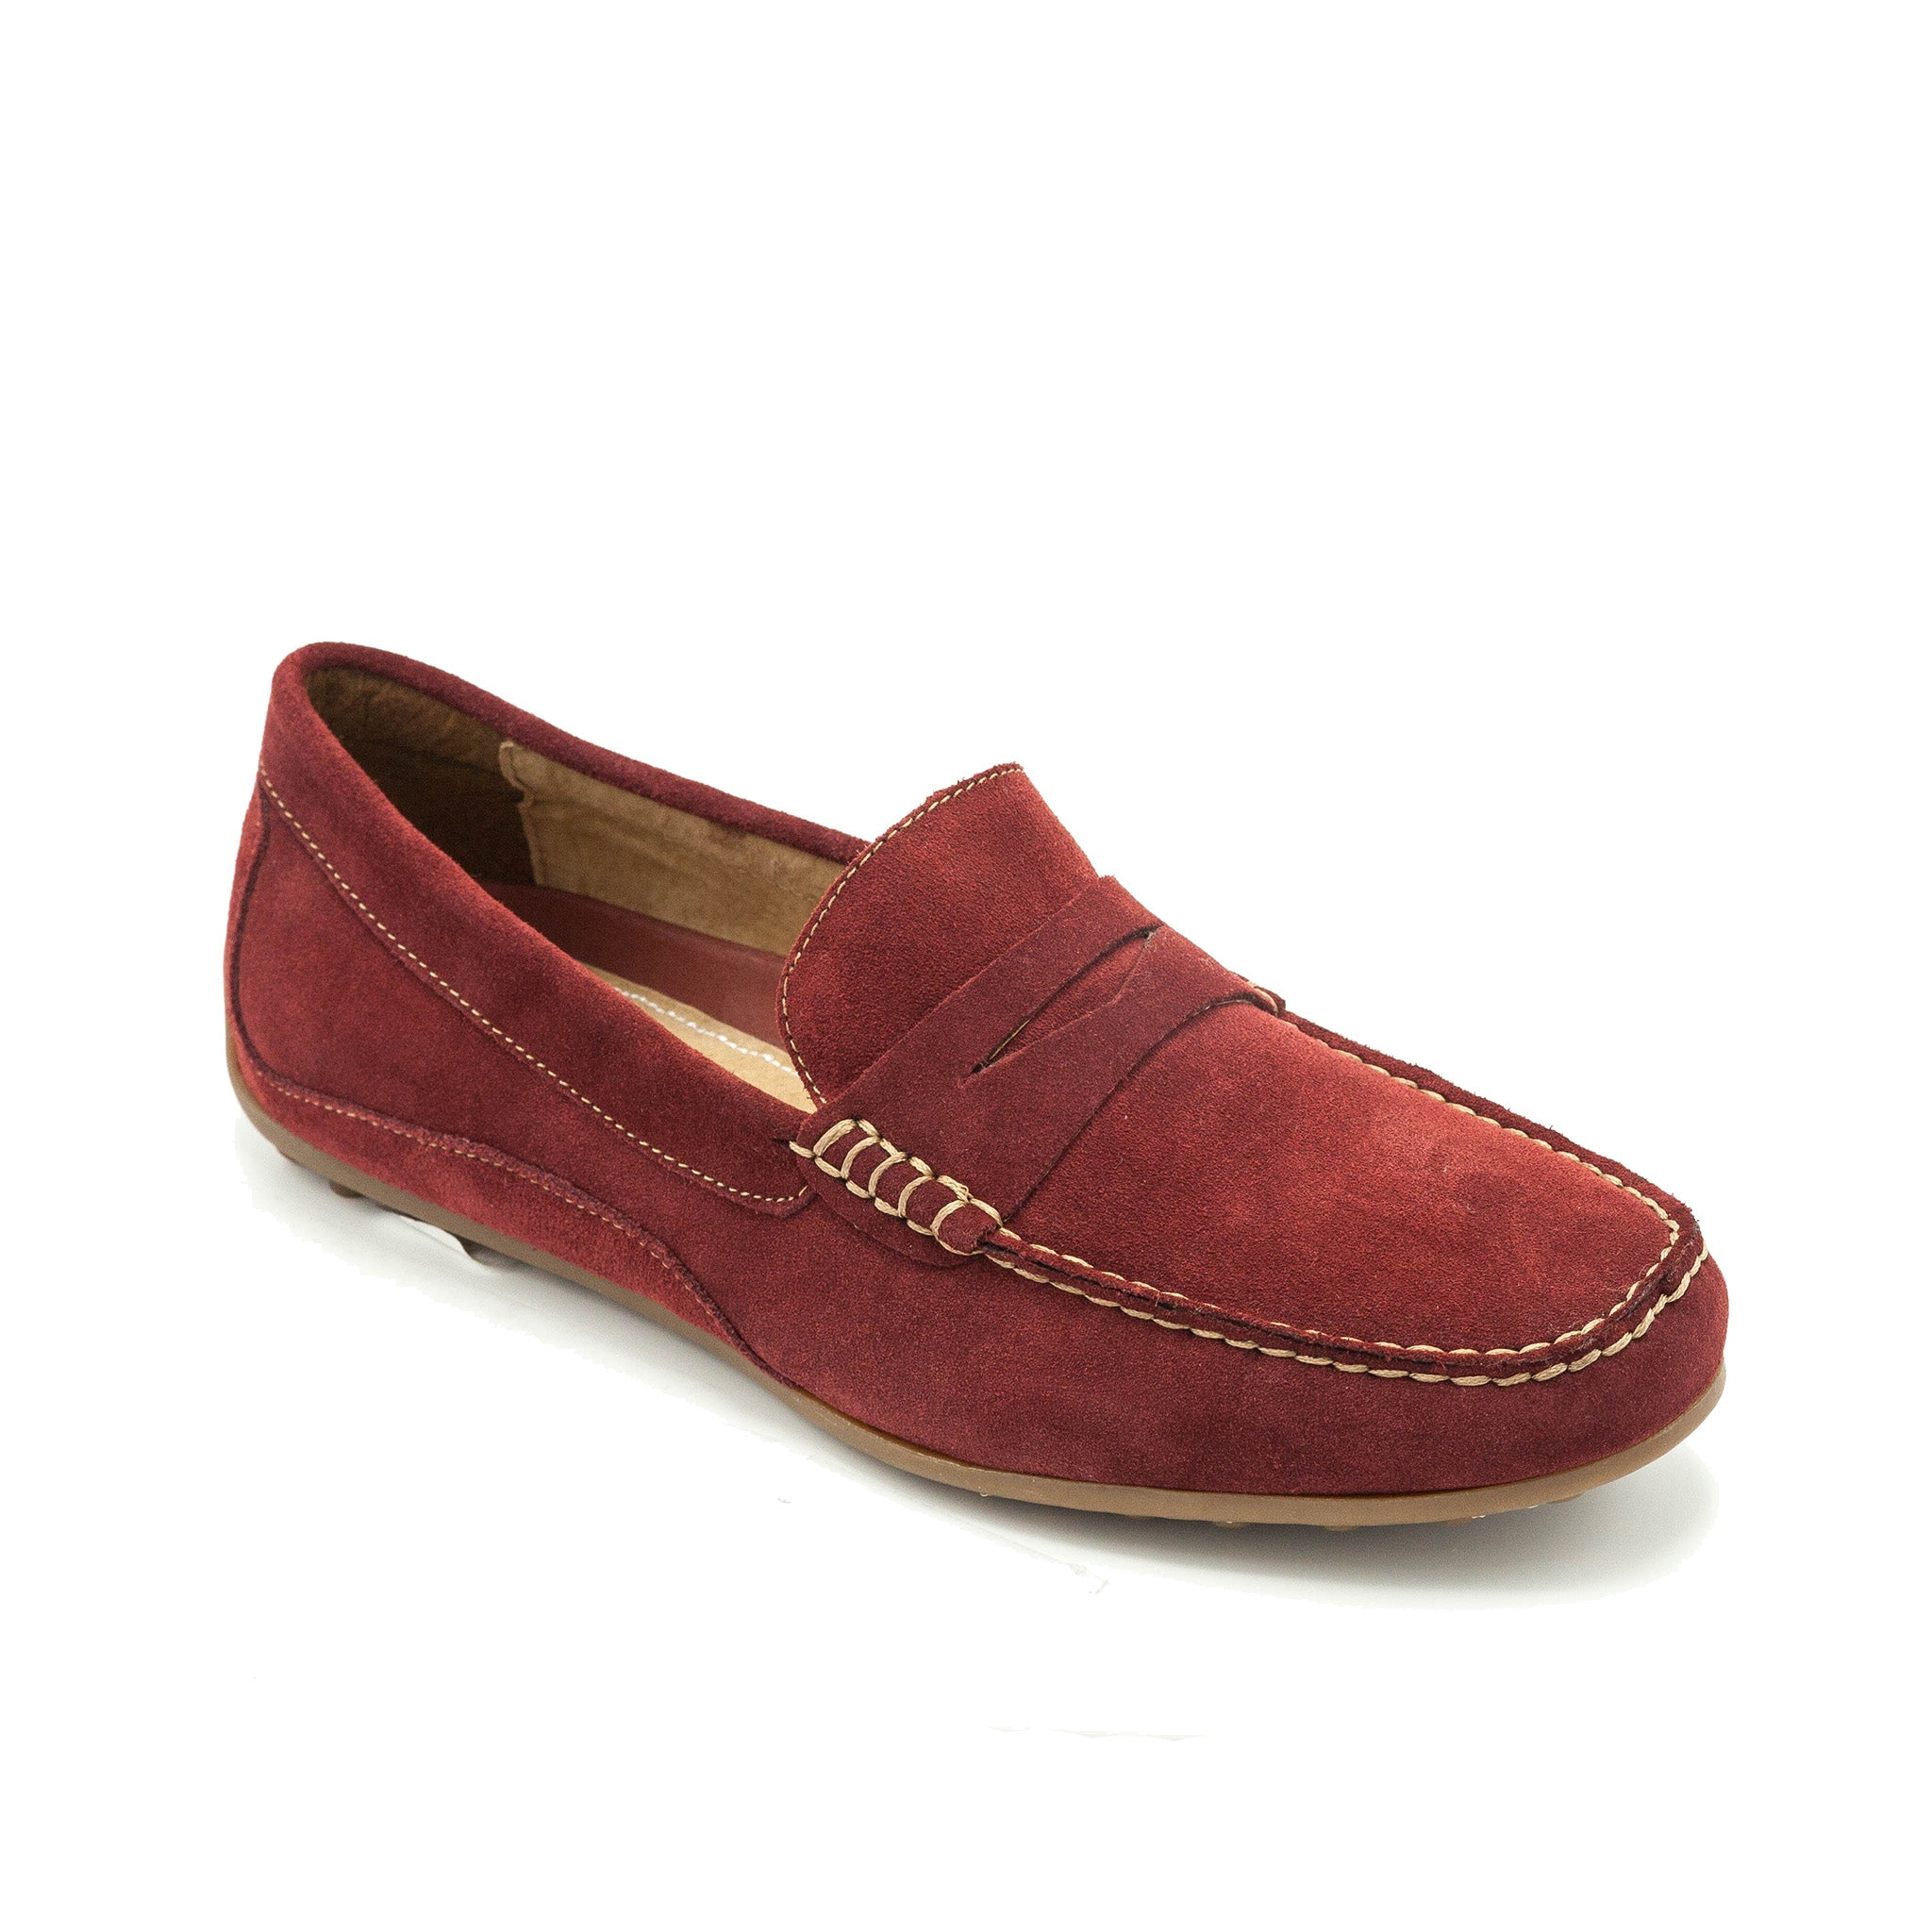 FLORSHEIM /OVAL MOC TOE PENNY LOAFER - RED